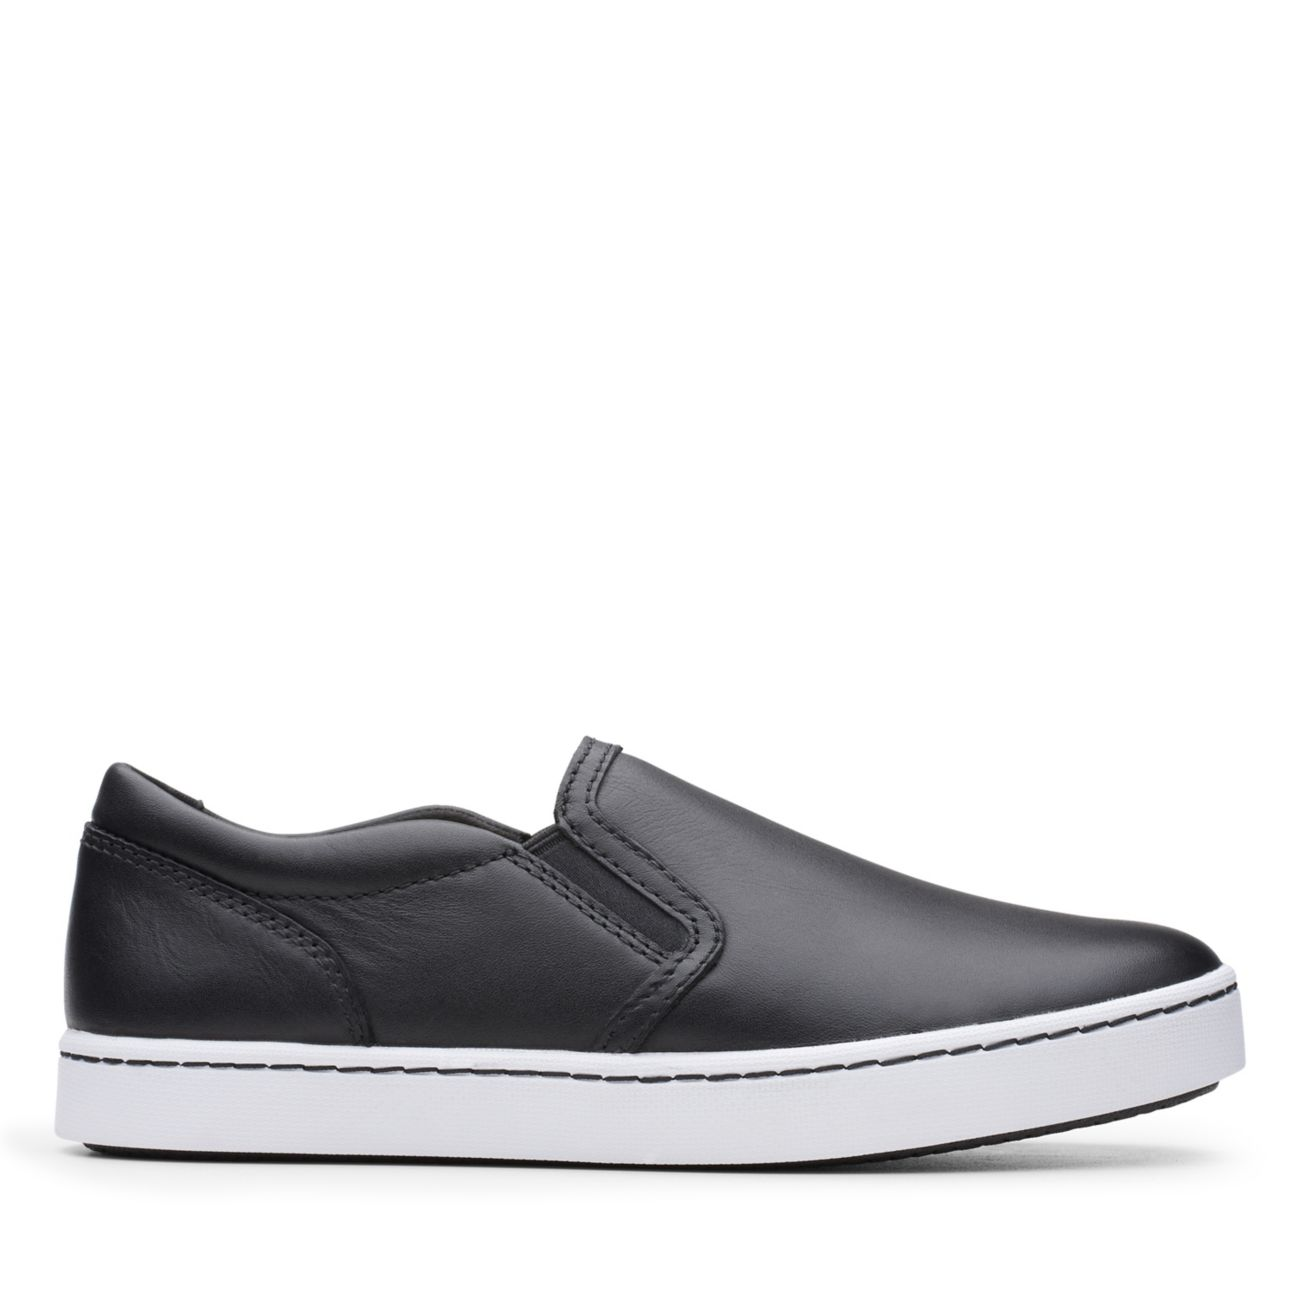 Pawley Bliss Black Leather - Clarks® Shoes Official Site | Clarks